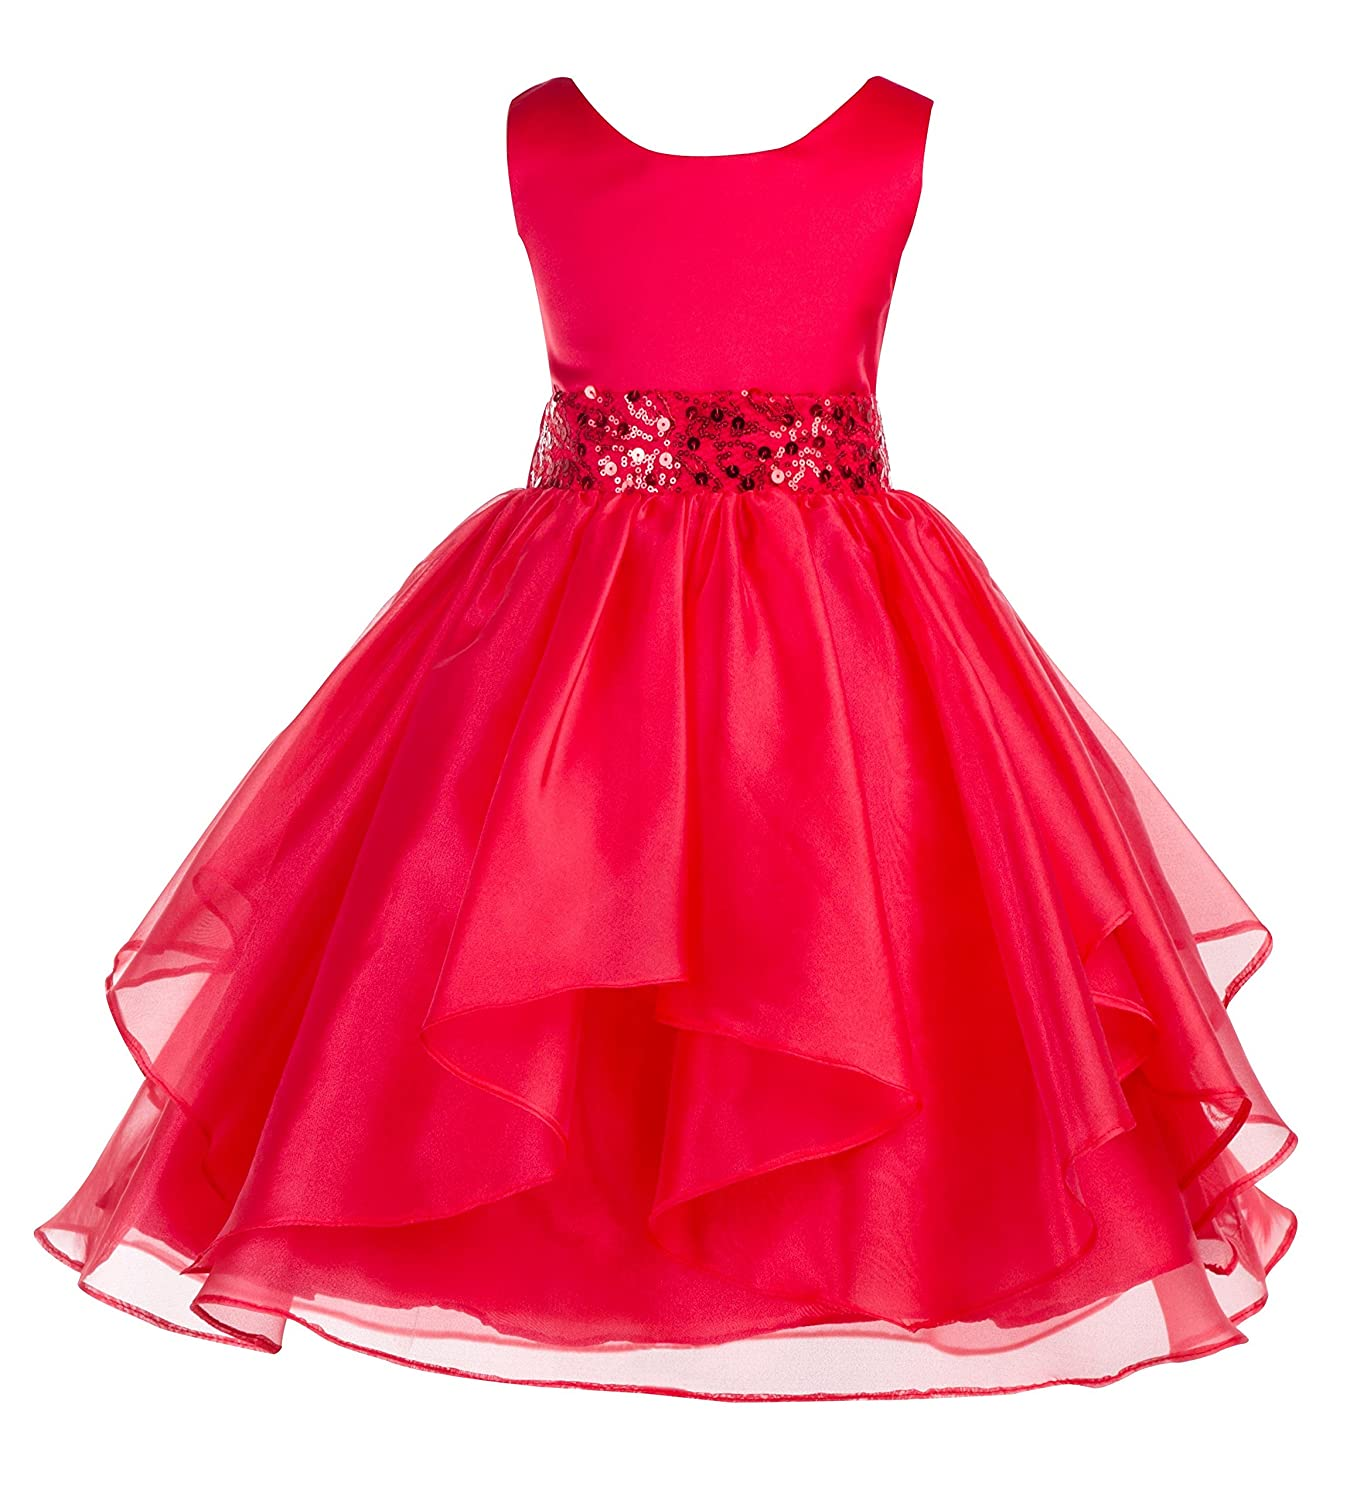 ekidsbridal Asymmetric Ruffled Organza Sequin Flower Girl Dress Christening Dresses 012S